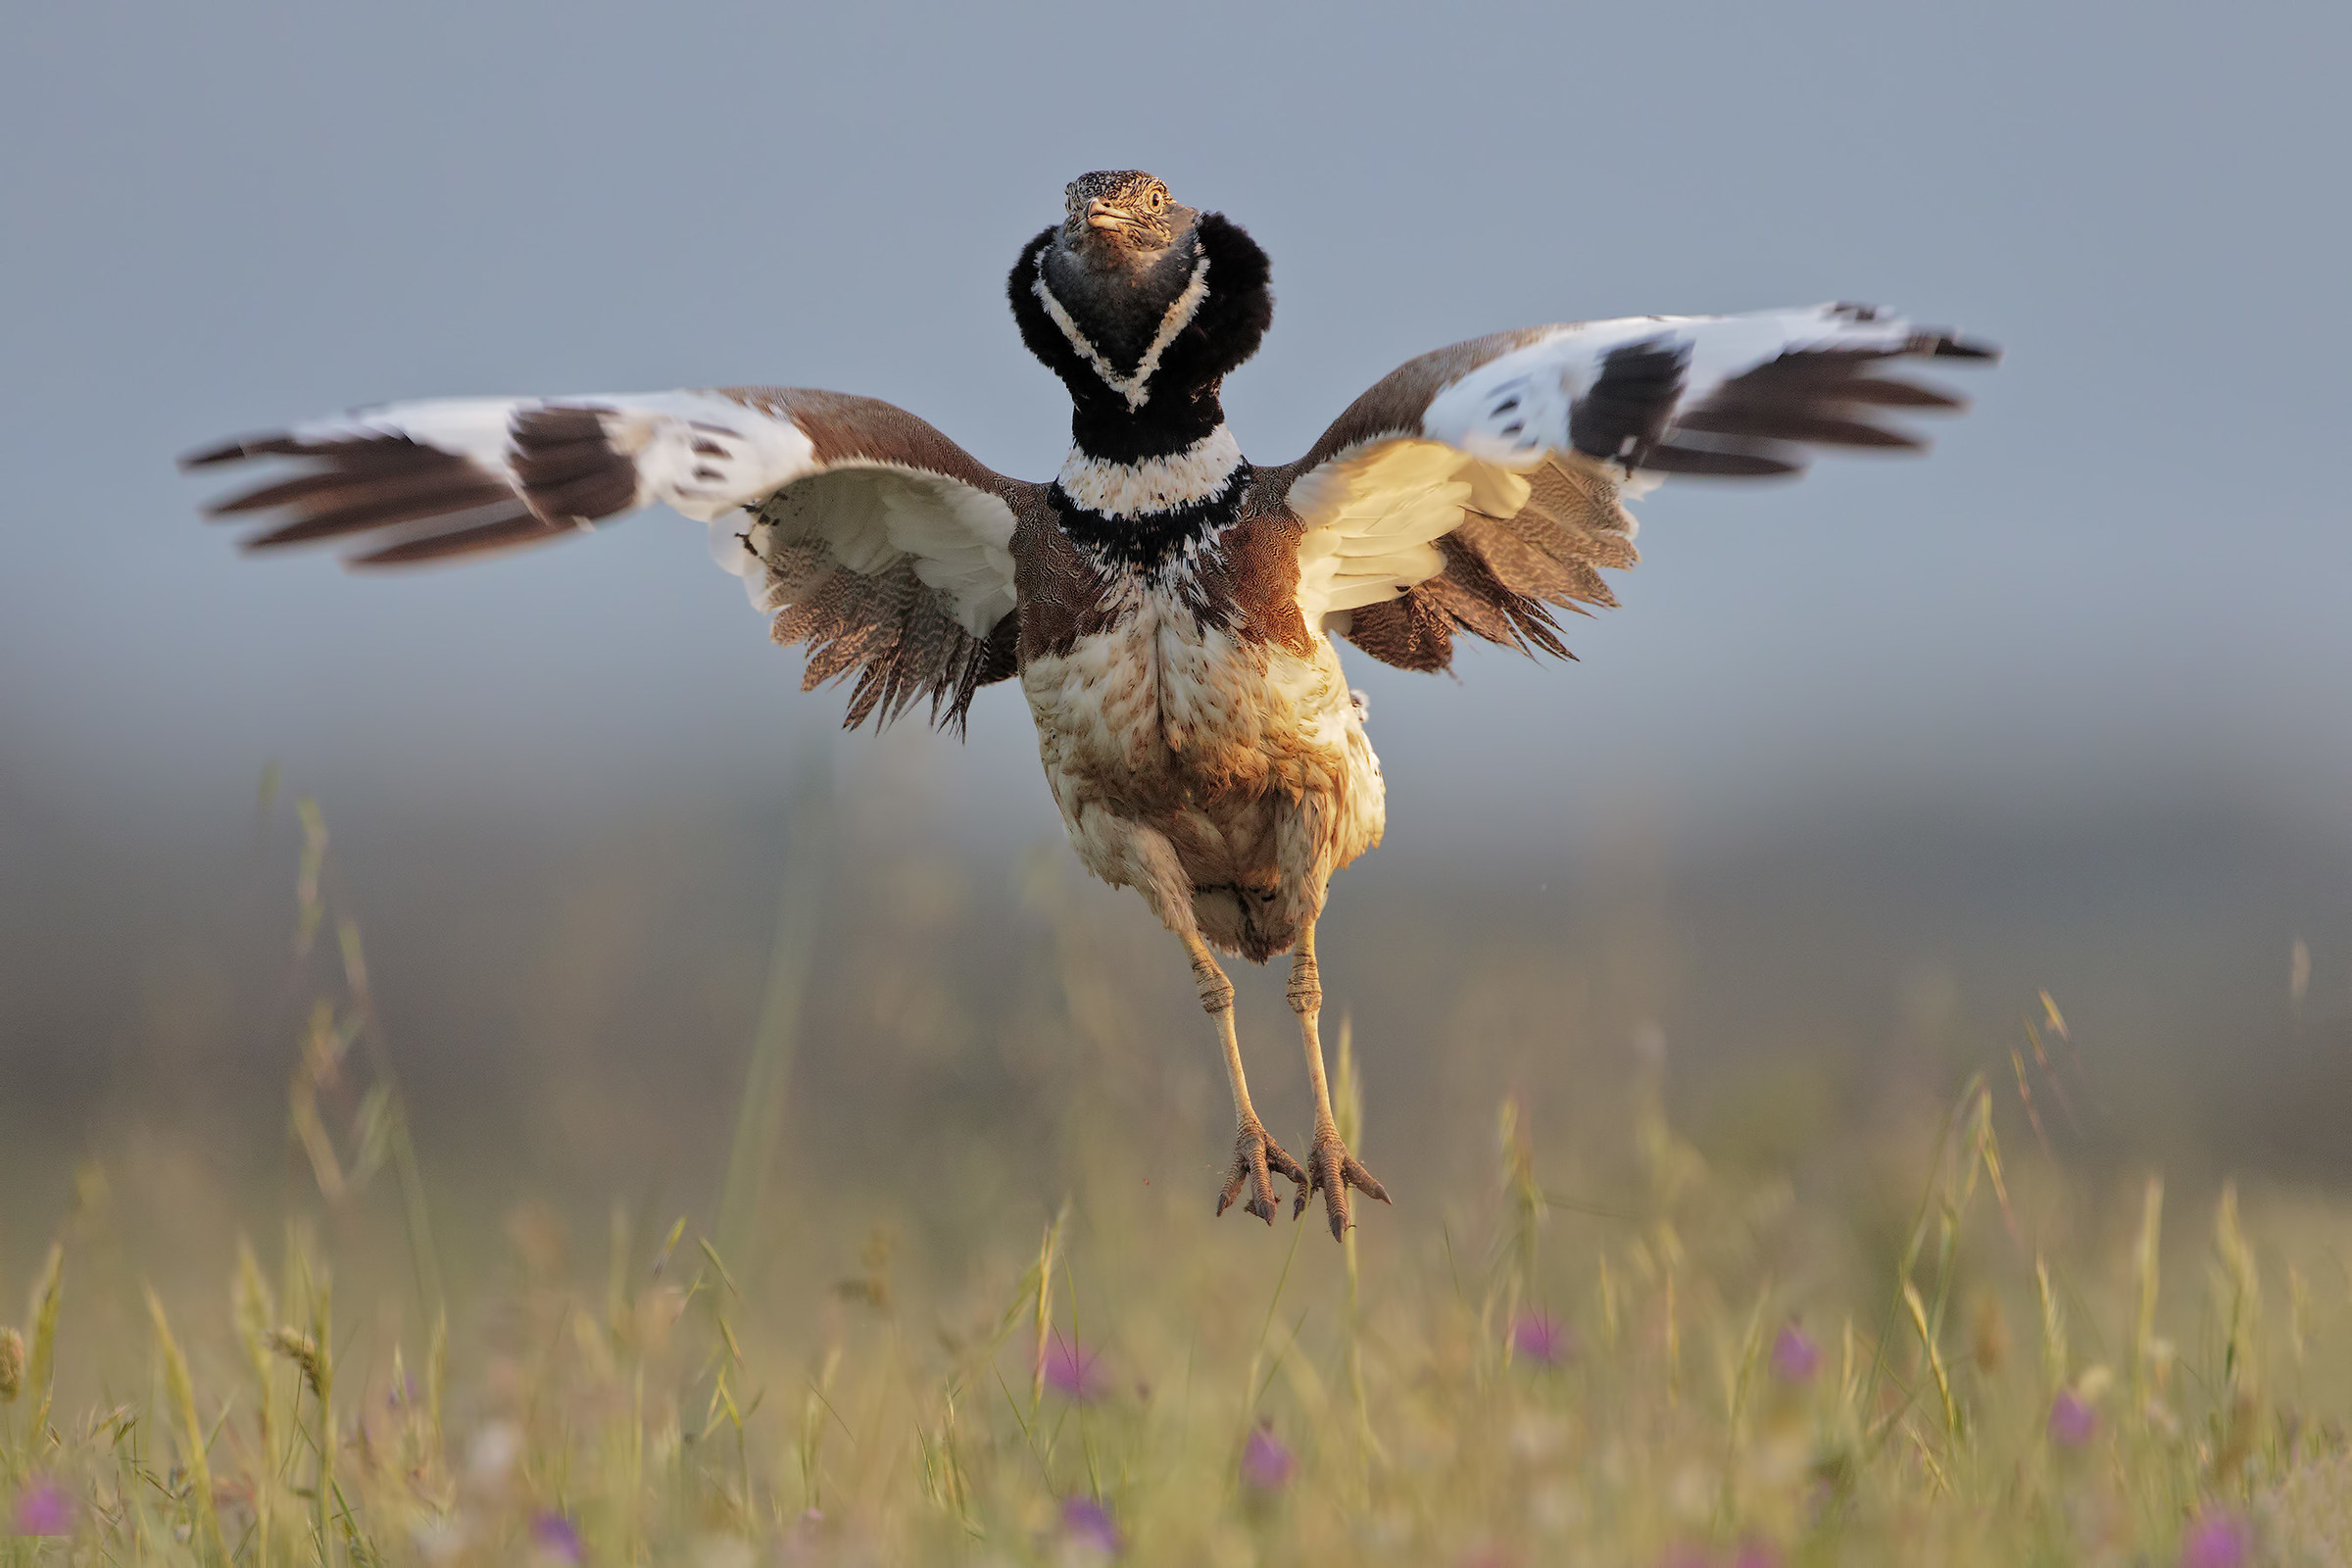 The jump of the Bustard...